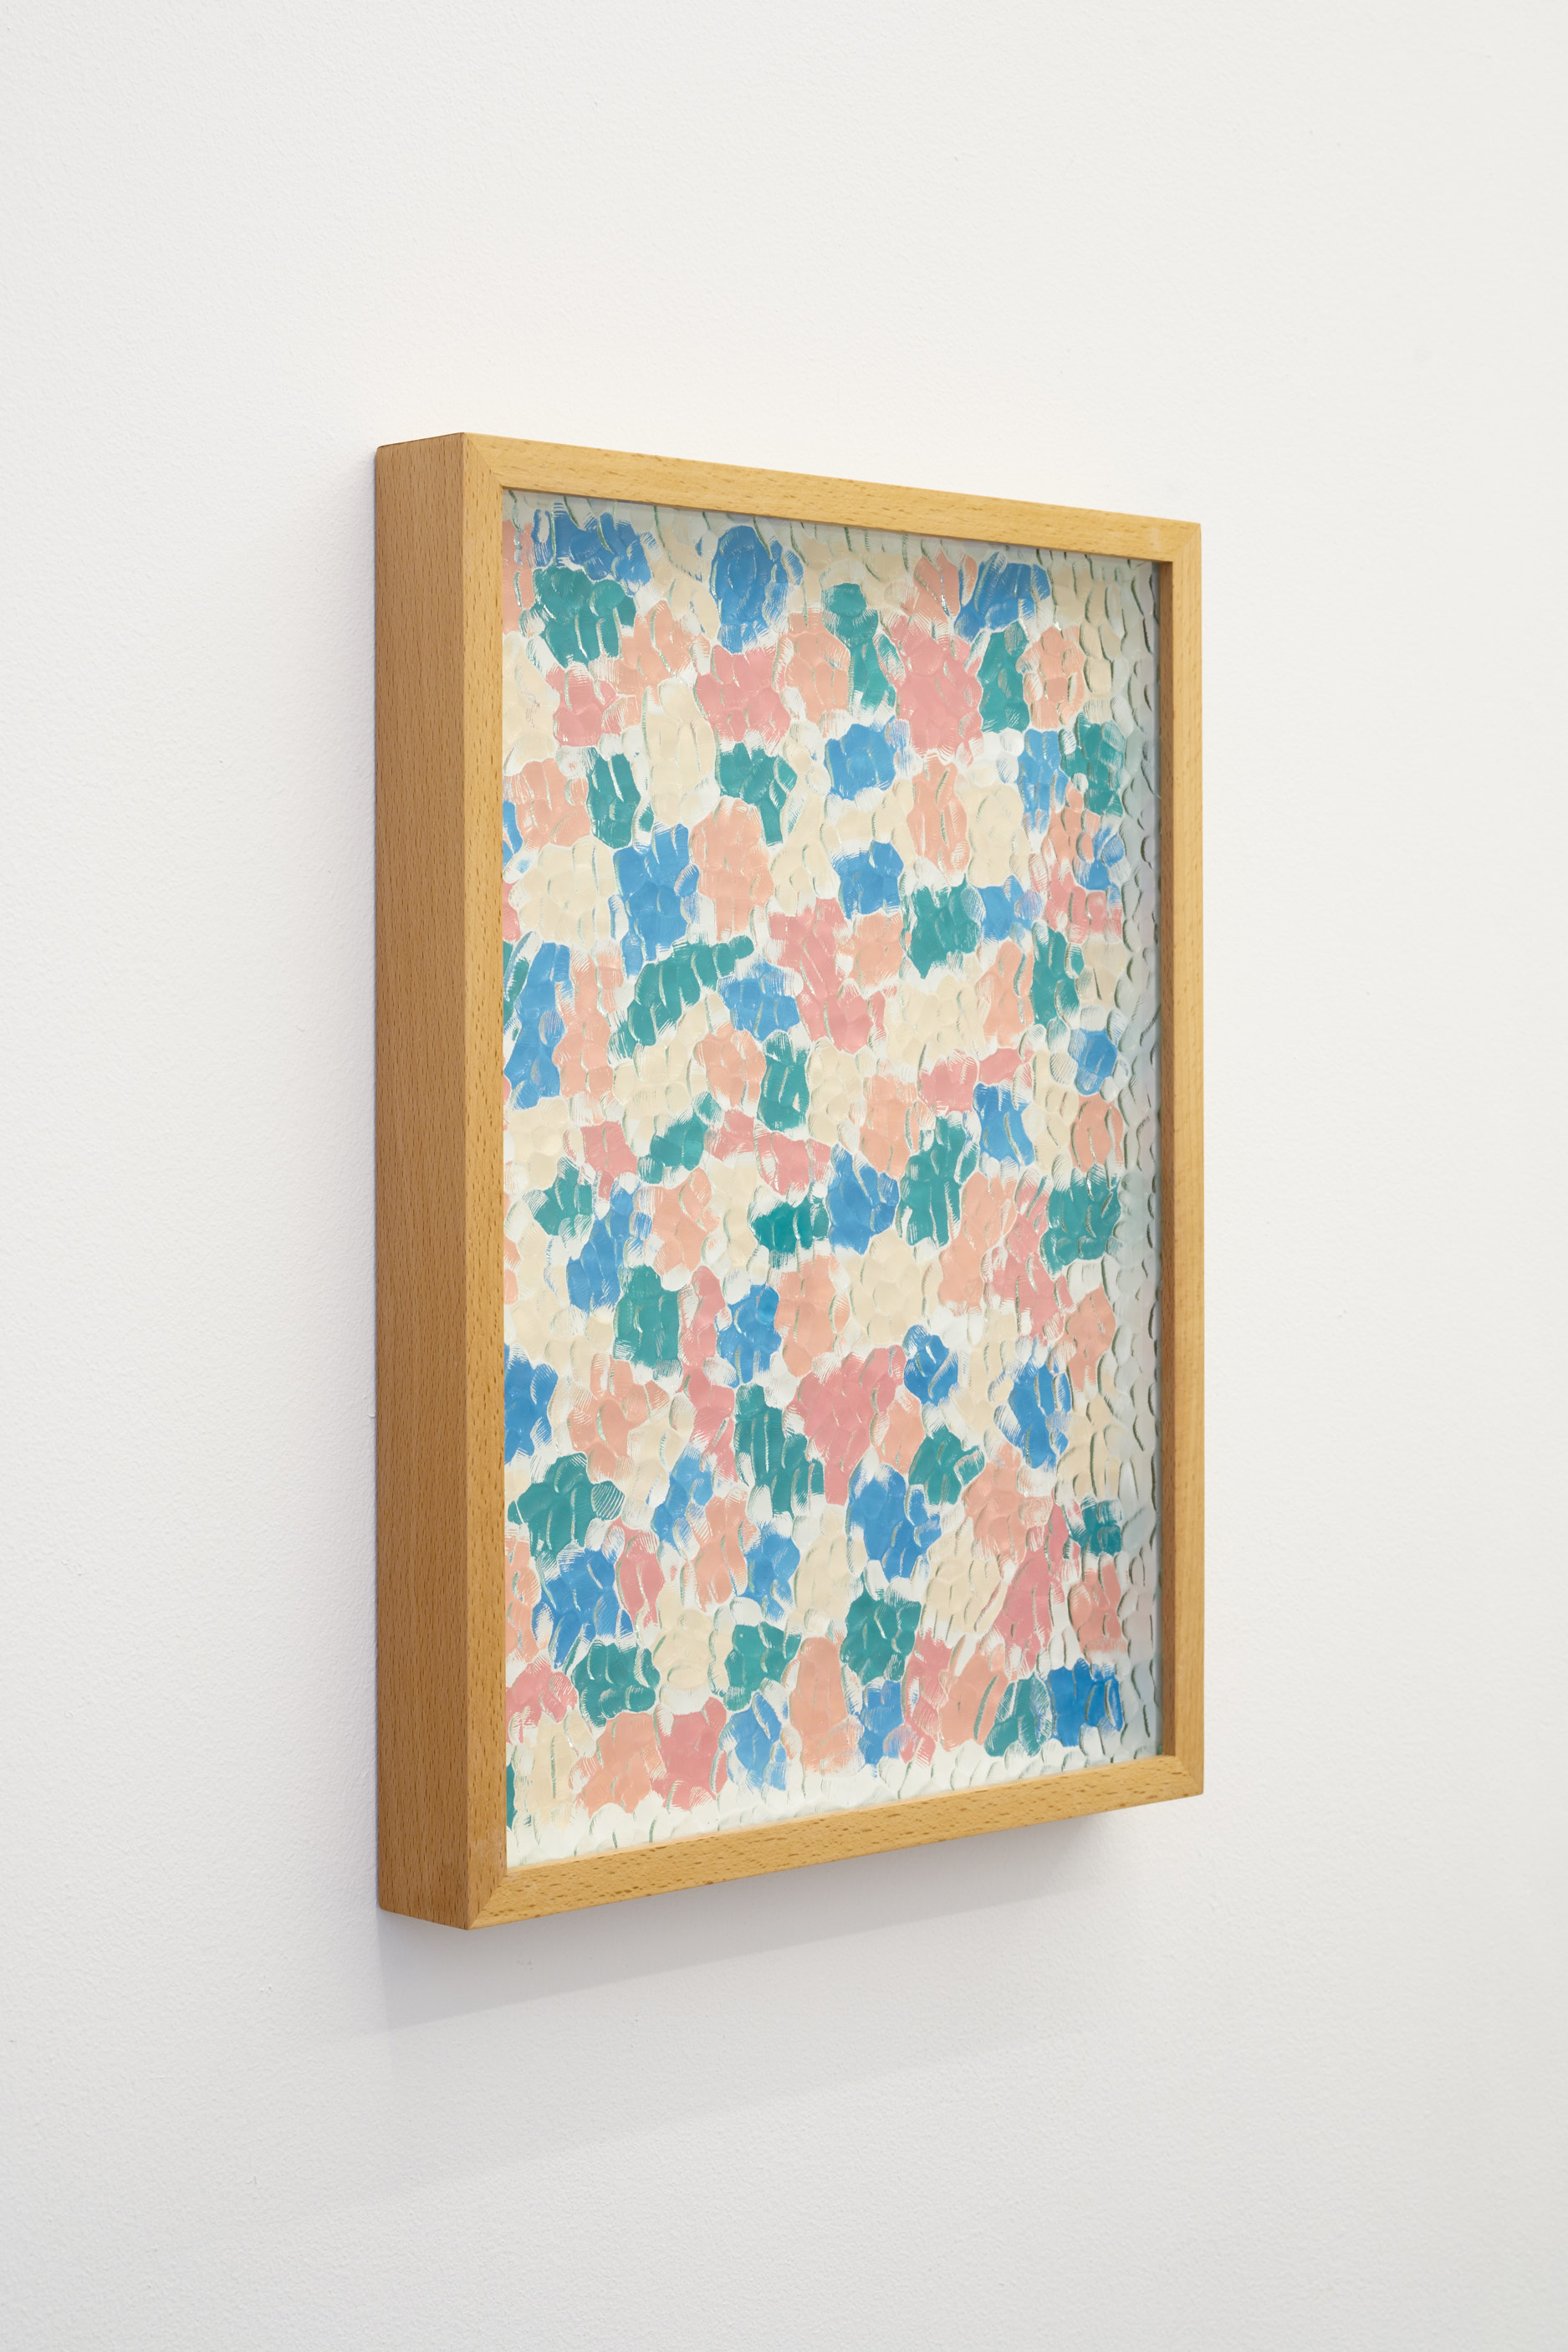 Richard Healy, Tropical Grapefruit (from Jacquard), 2015. Tenderpixel.